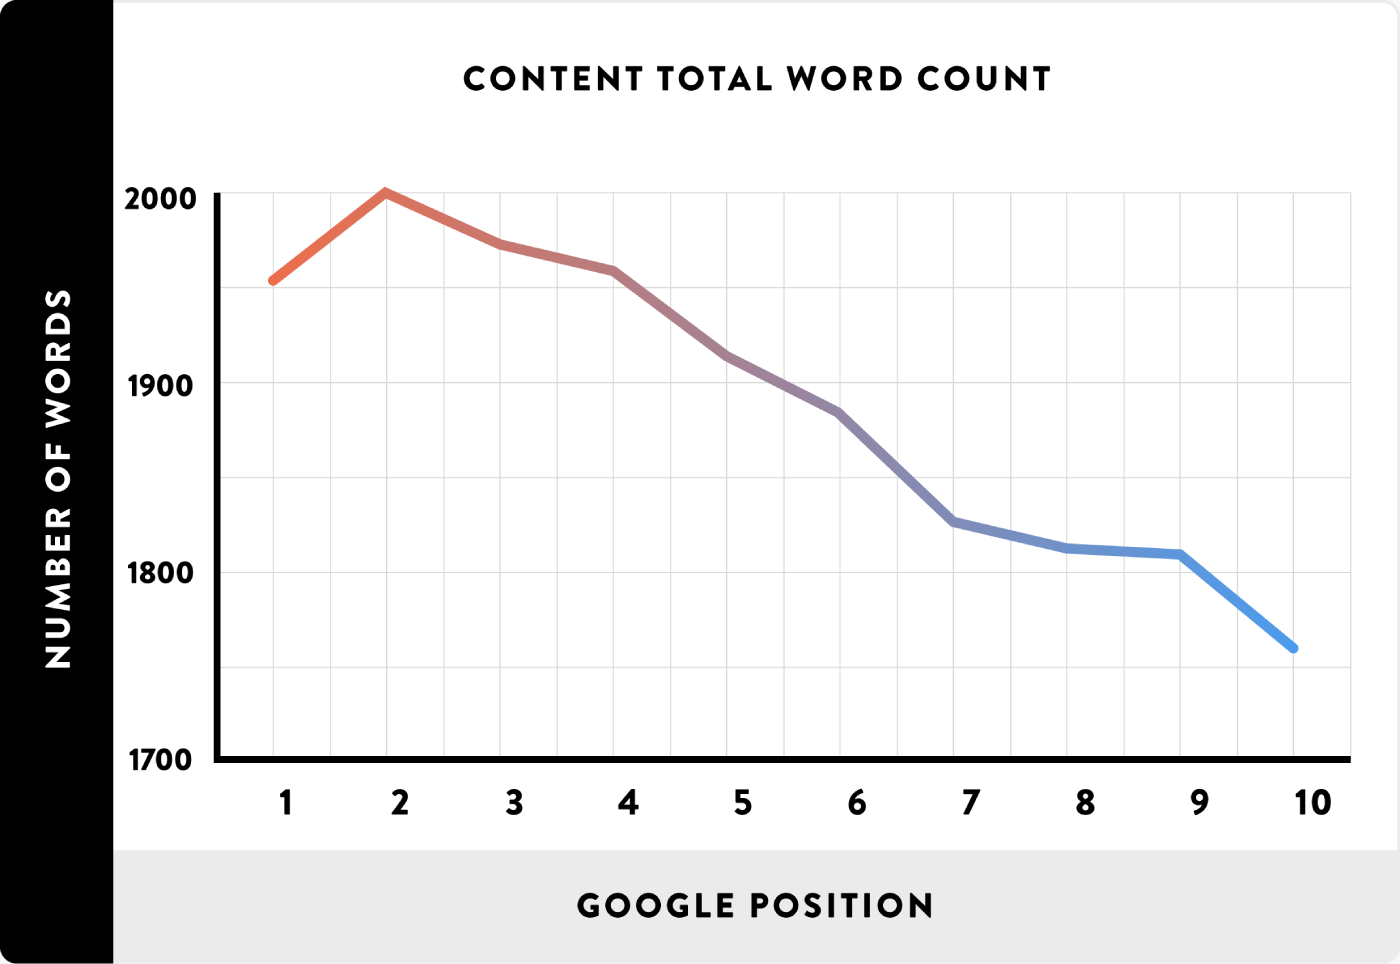 Google total word count